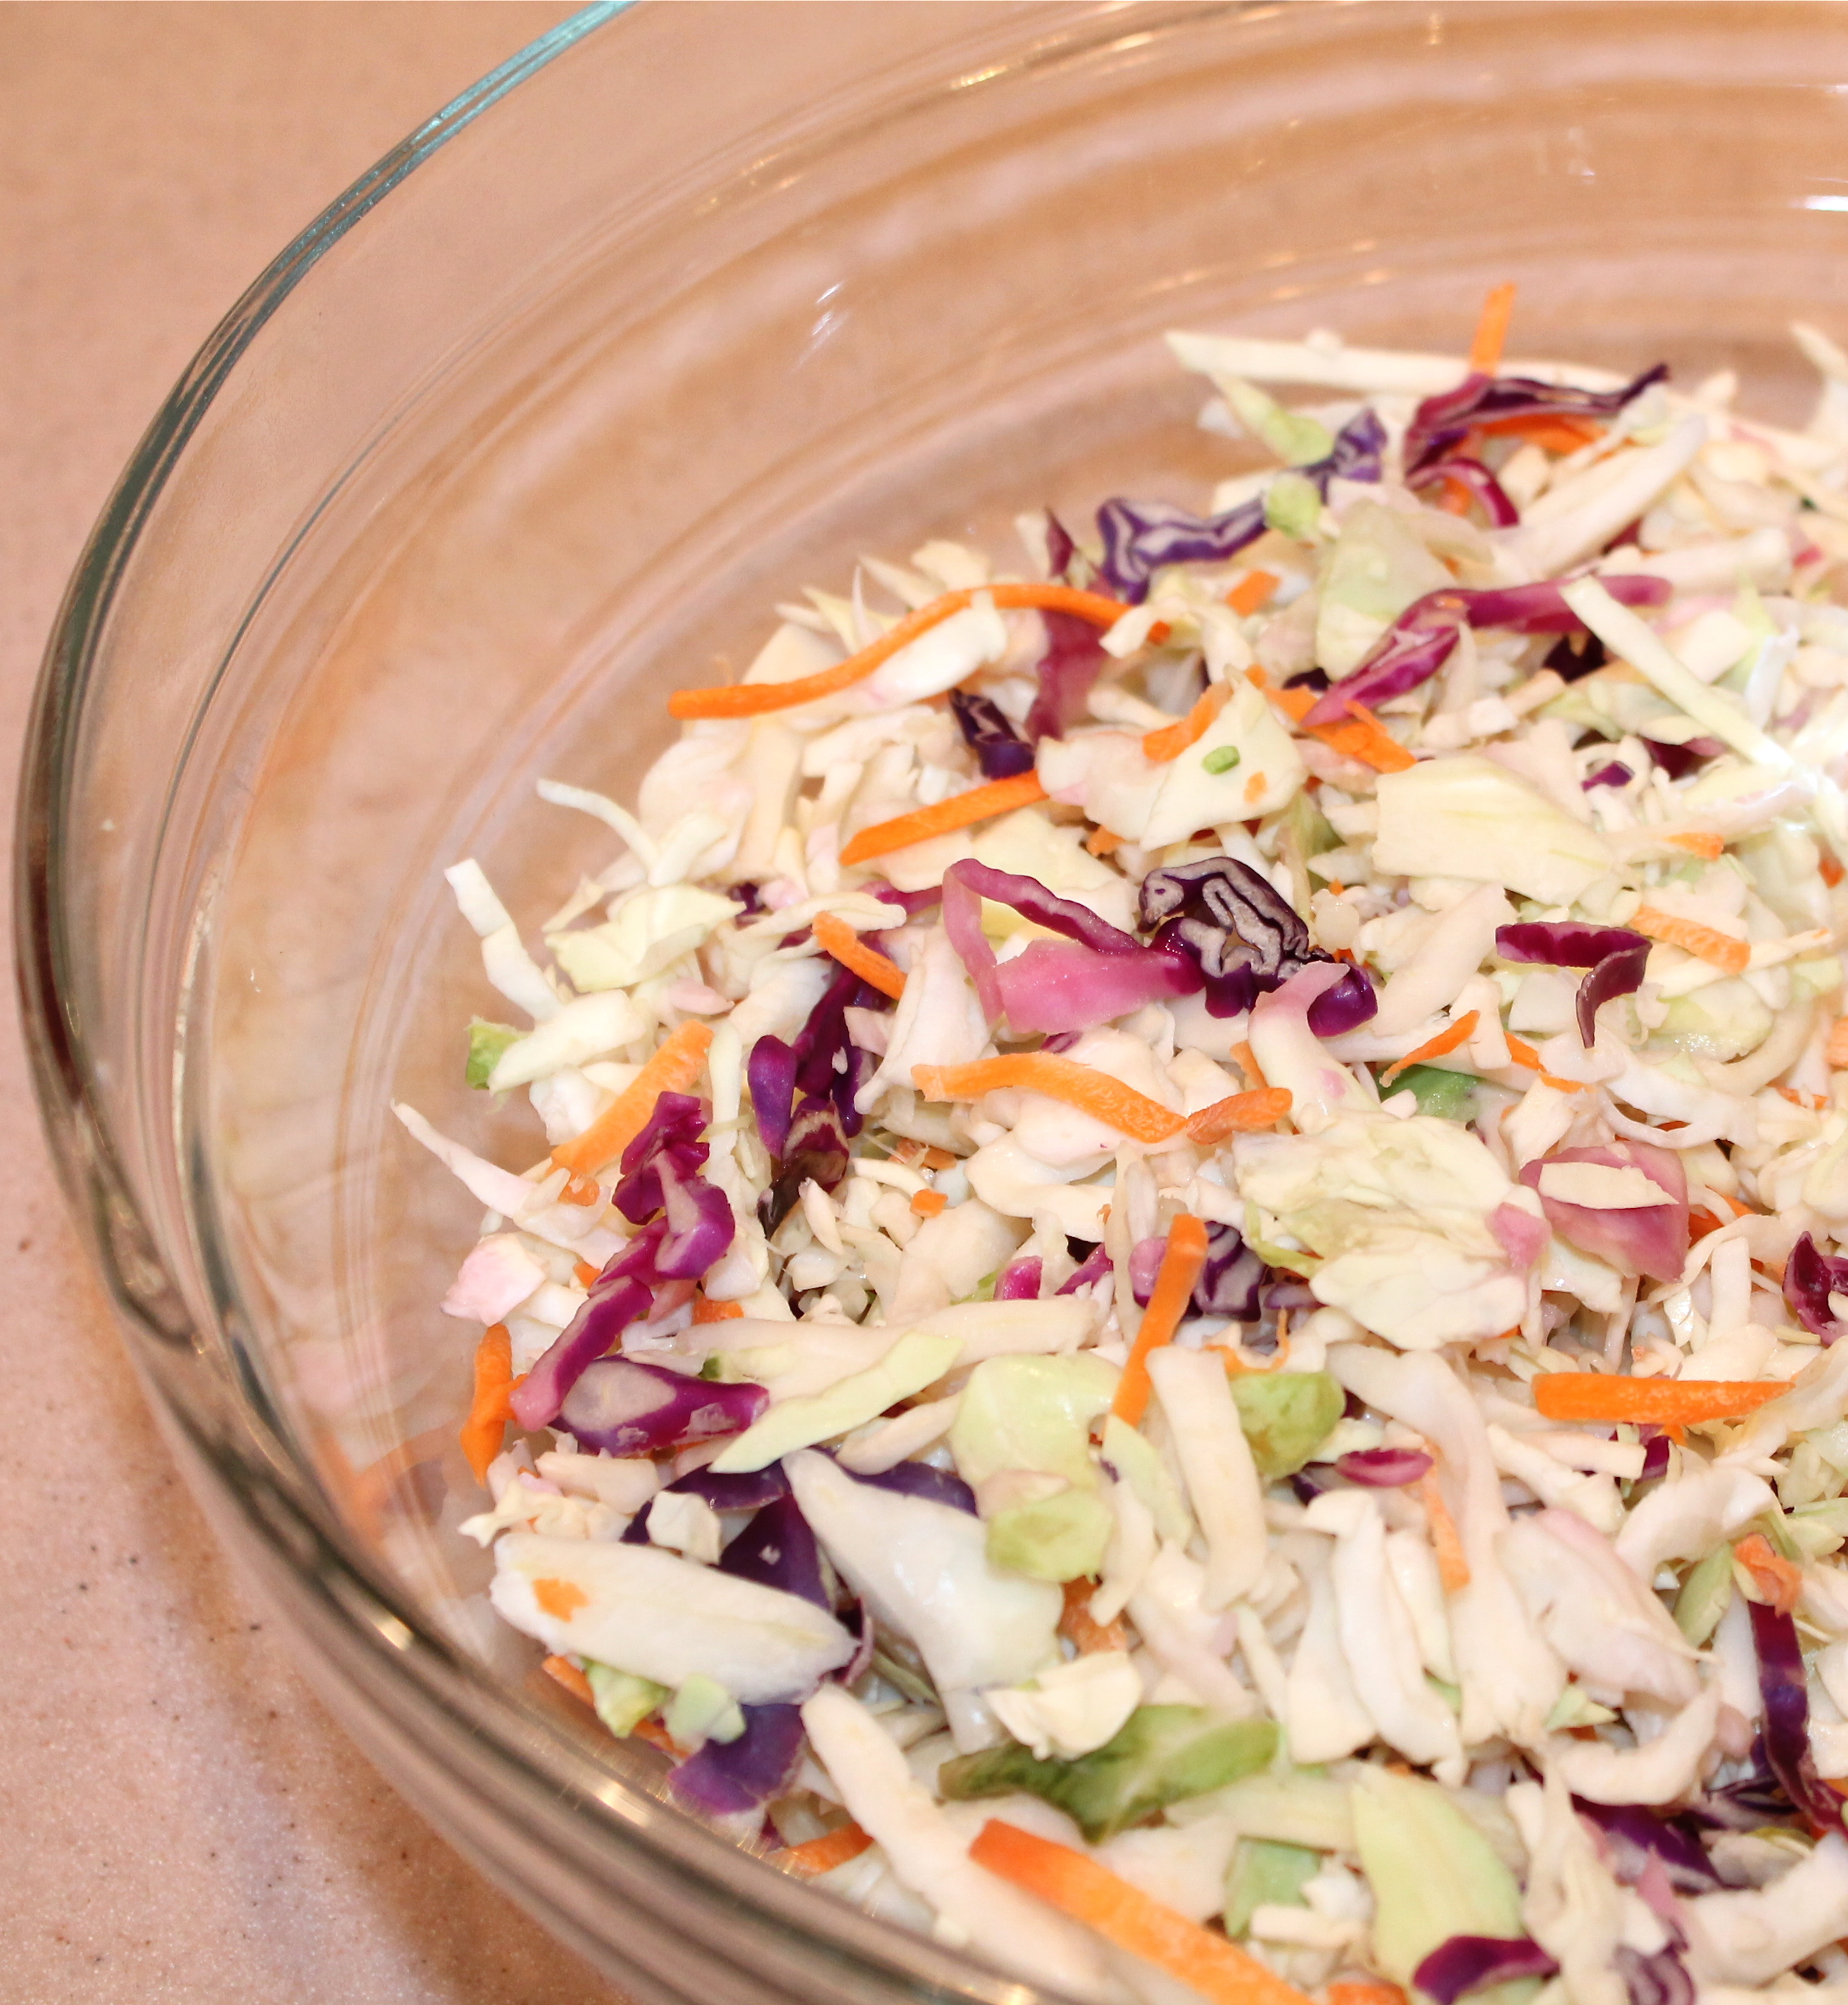 Coleslaw clipart tossed salad Sour Encounters about Sweet A